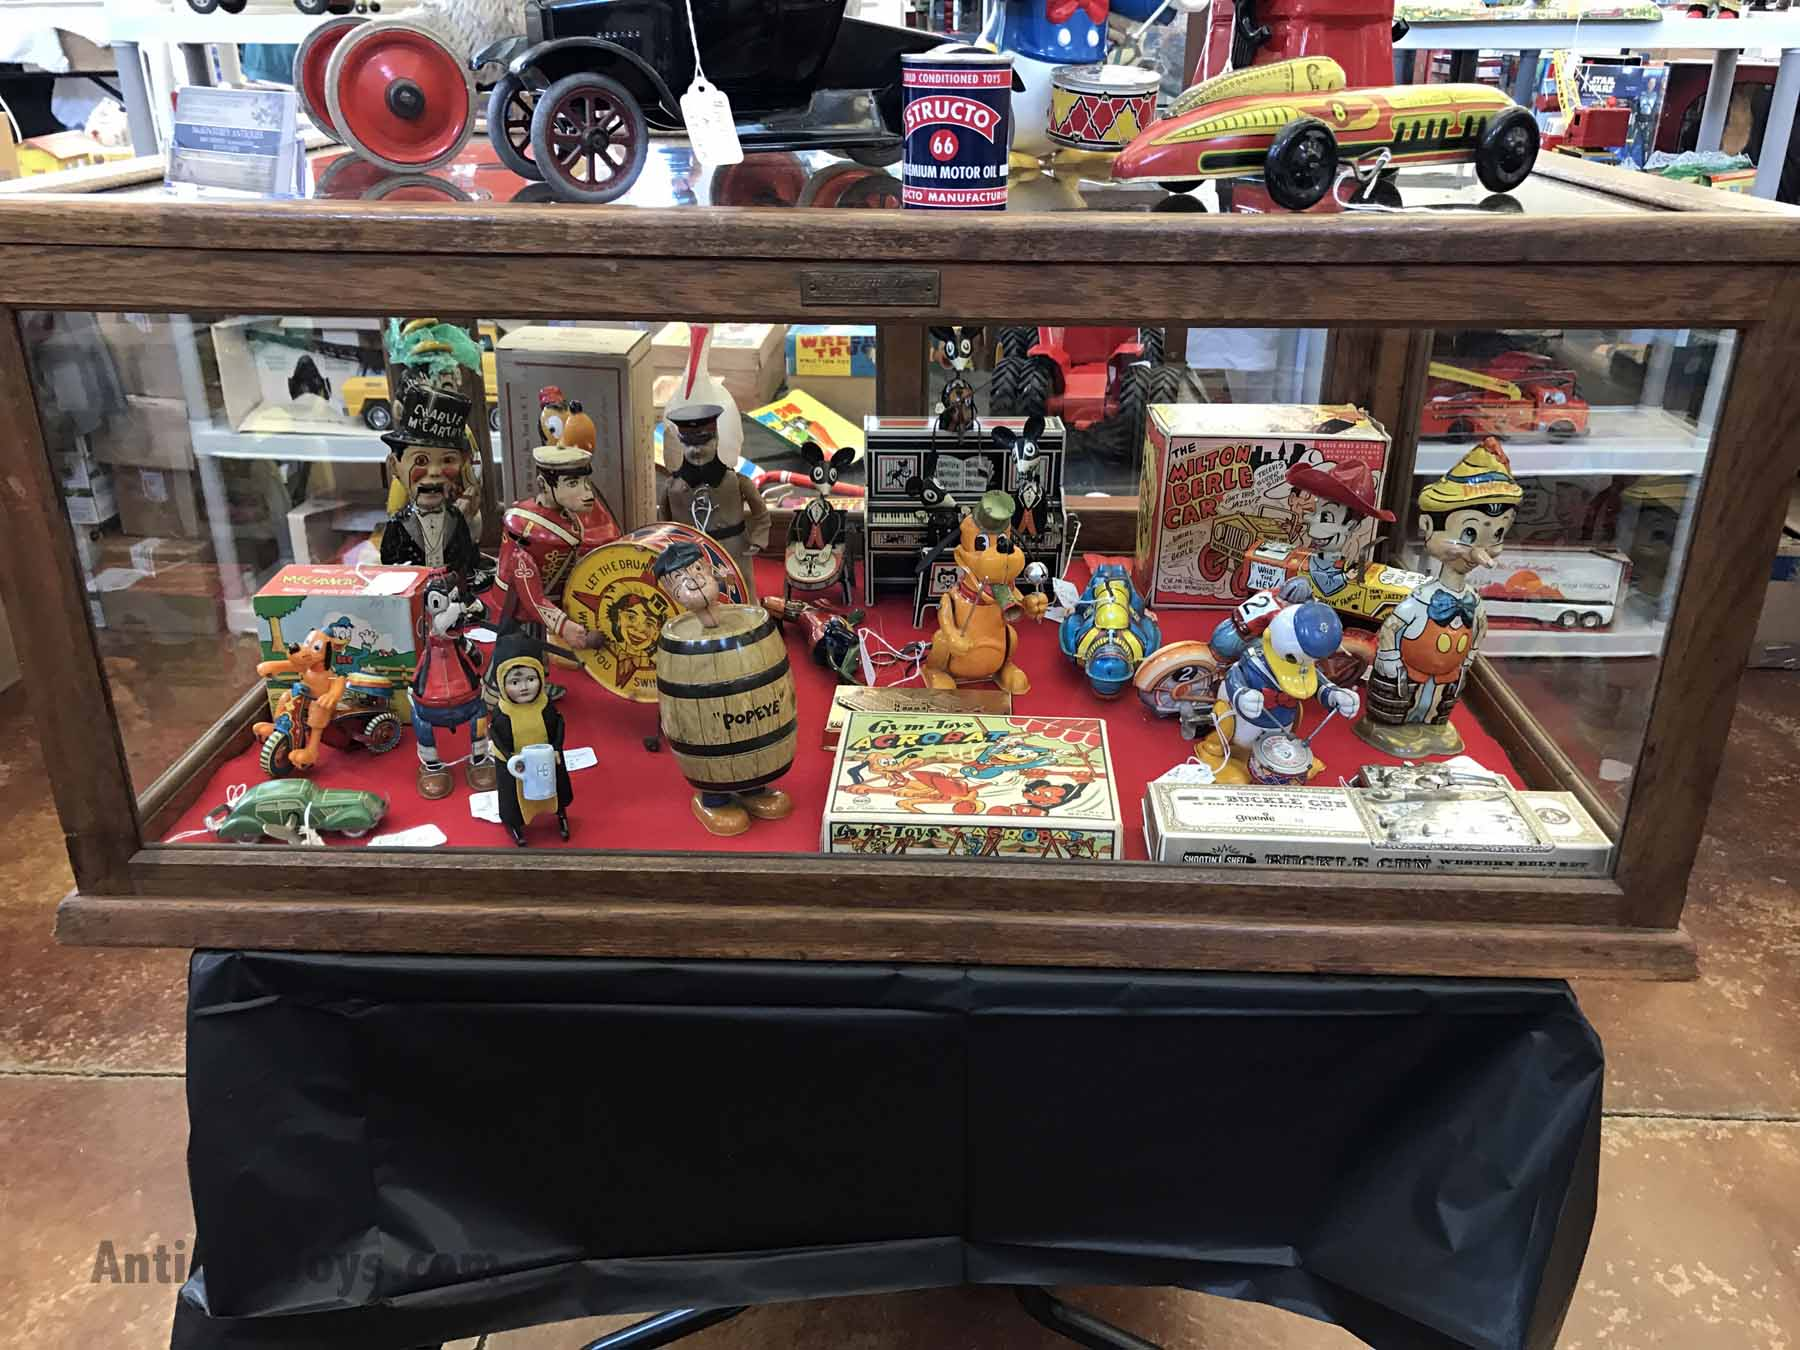 Flying Car For Sale >> Chicago Toy Show 2017 Review and Trends - Antique Toys for ...